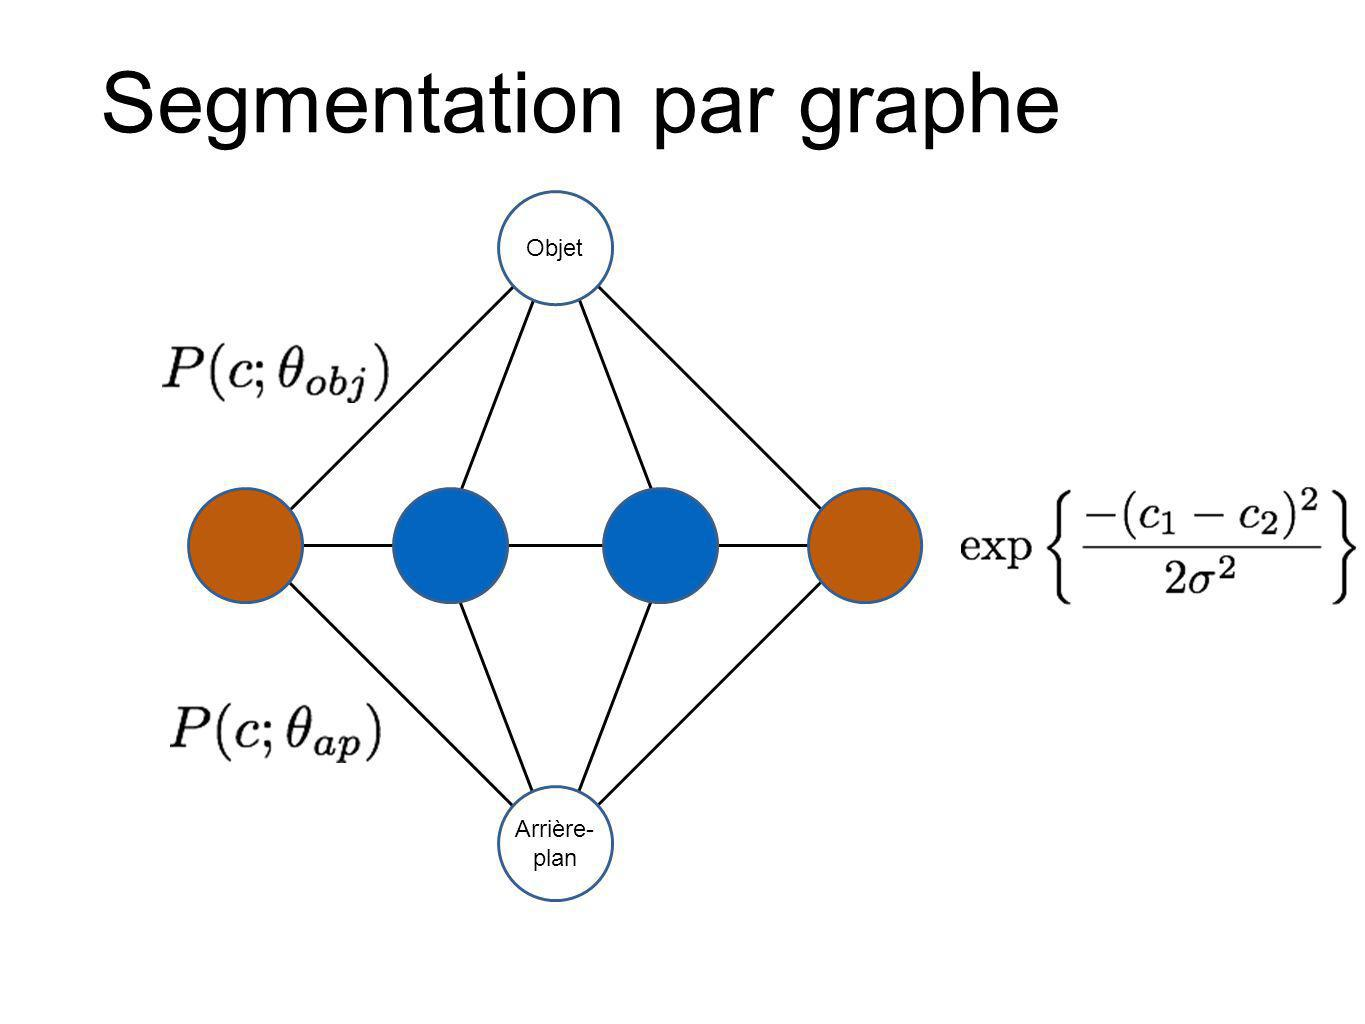 Segmentation par graphe